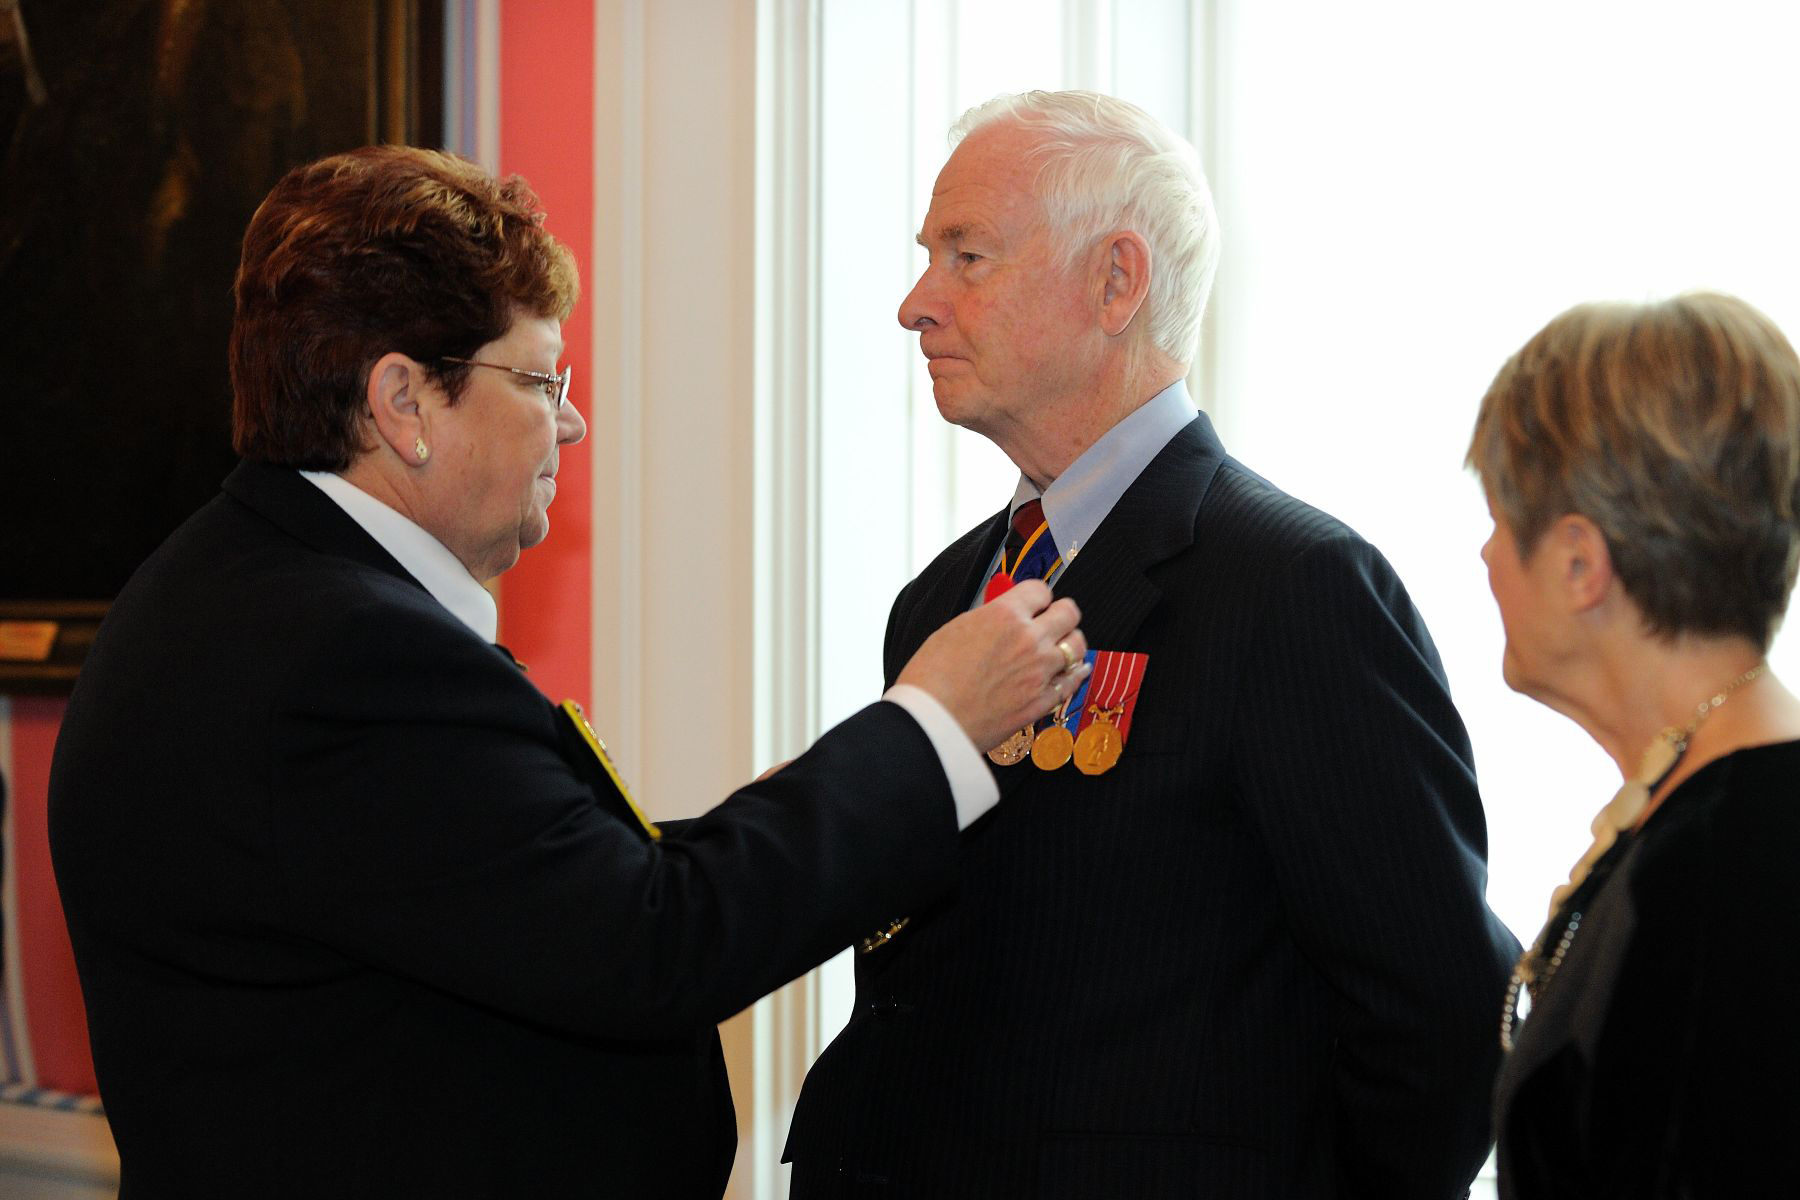 His Excellency, who is patron of The Royal Canadian Legion, received the symbolic first poppy from Patricia Varga, Dominion President of The Royal Canadian Legion.